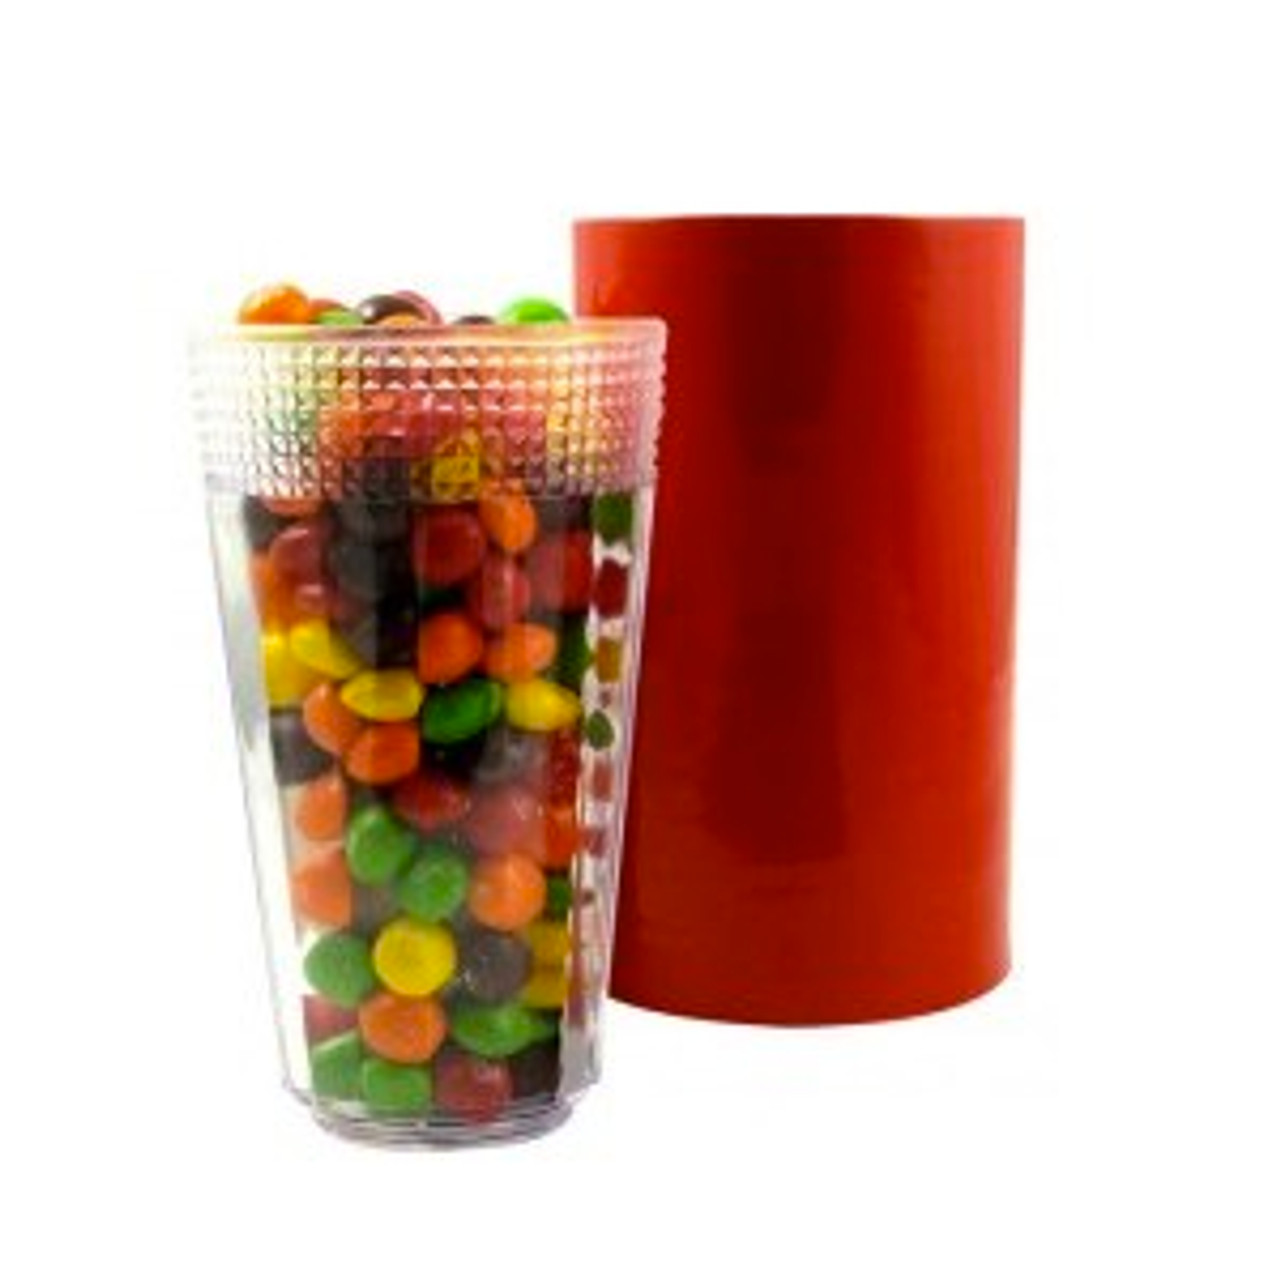 NEW - Candy Factory - A Glass of Milk Instantly Fills with Sweets - New Creation in Christ - God Changes Us